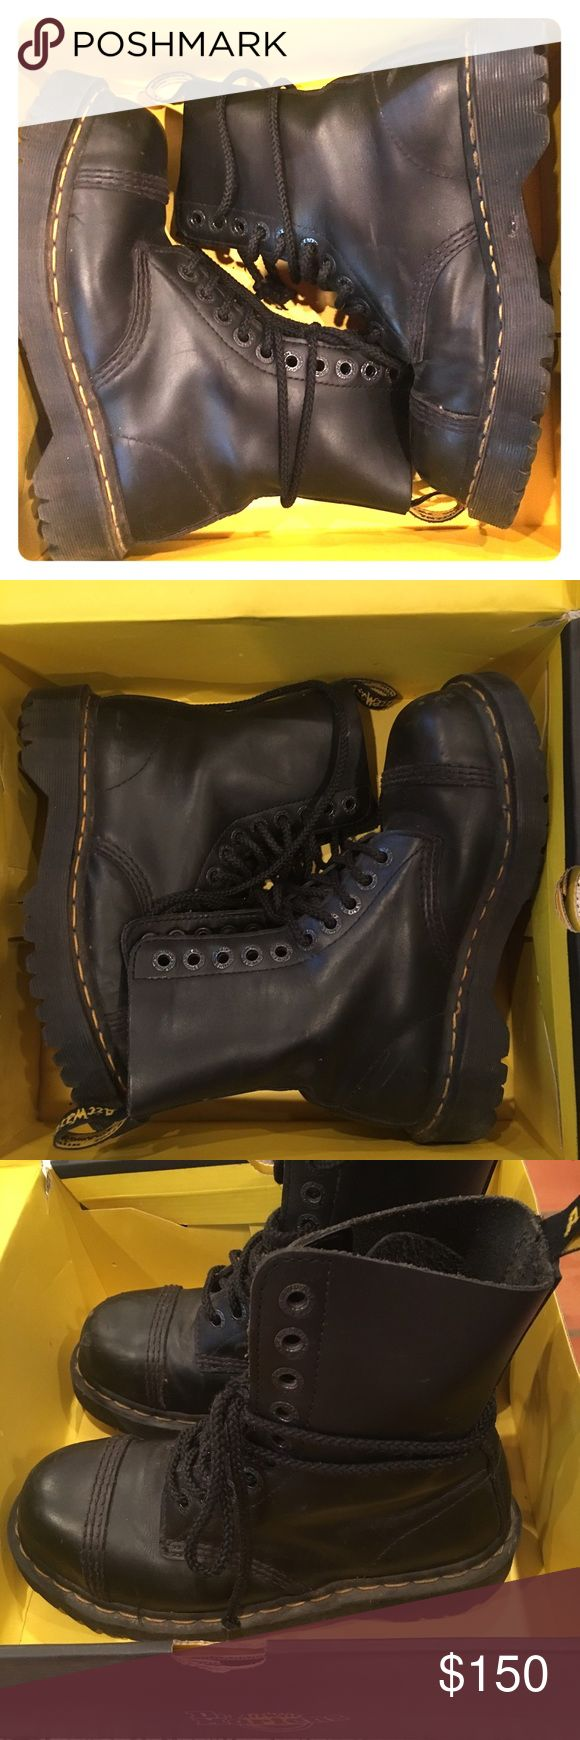 10 eyelet steel cap Dr Martens boots Authentic docs. 🎩Stomped just a few miles, kicked a few bricks, in original box. STEEL CAP, 10 eyelet, black rubber sole. Size 6 fits women's US size 7.5(box says size US W7, but my experience is that the sizes run 1.5 larger than the uk/us men's size. 💜I wear a 7.5, and these fit perfect with boot socks. The euro size listed on box is 38, which POSHMARK converts to US women's 8. 🚨The true size range of these boots is 7.5-8 women's US size. Dr. Martens…